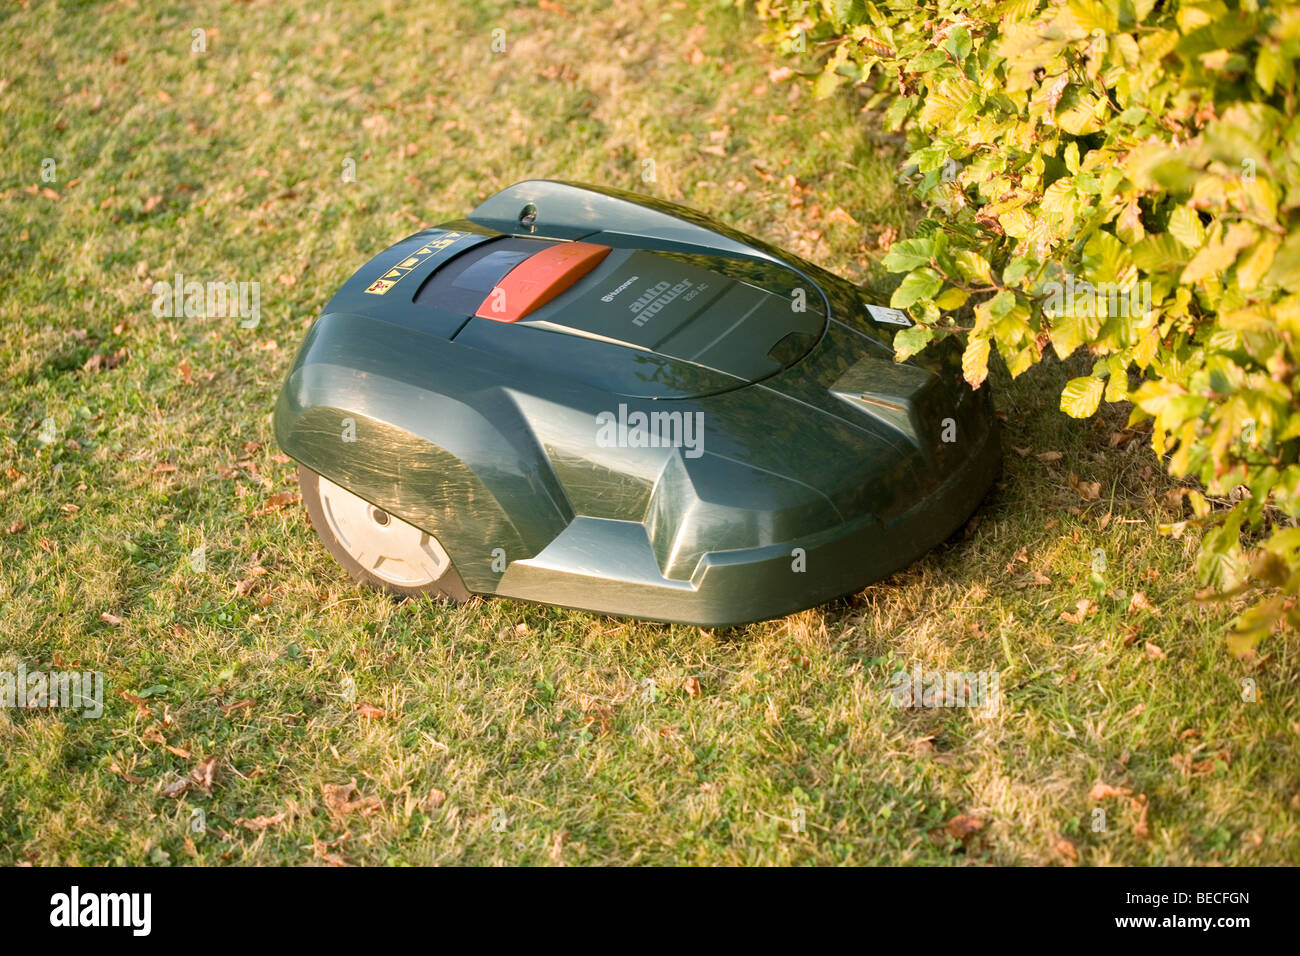 Automatic robot lawn mower cutting grass and running into a hedge - Stock Image